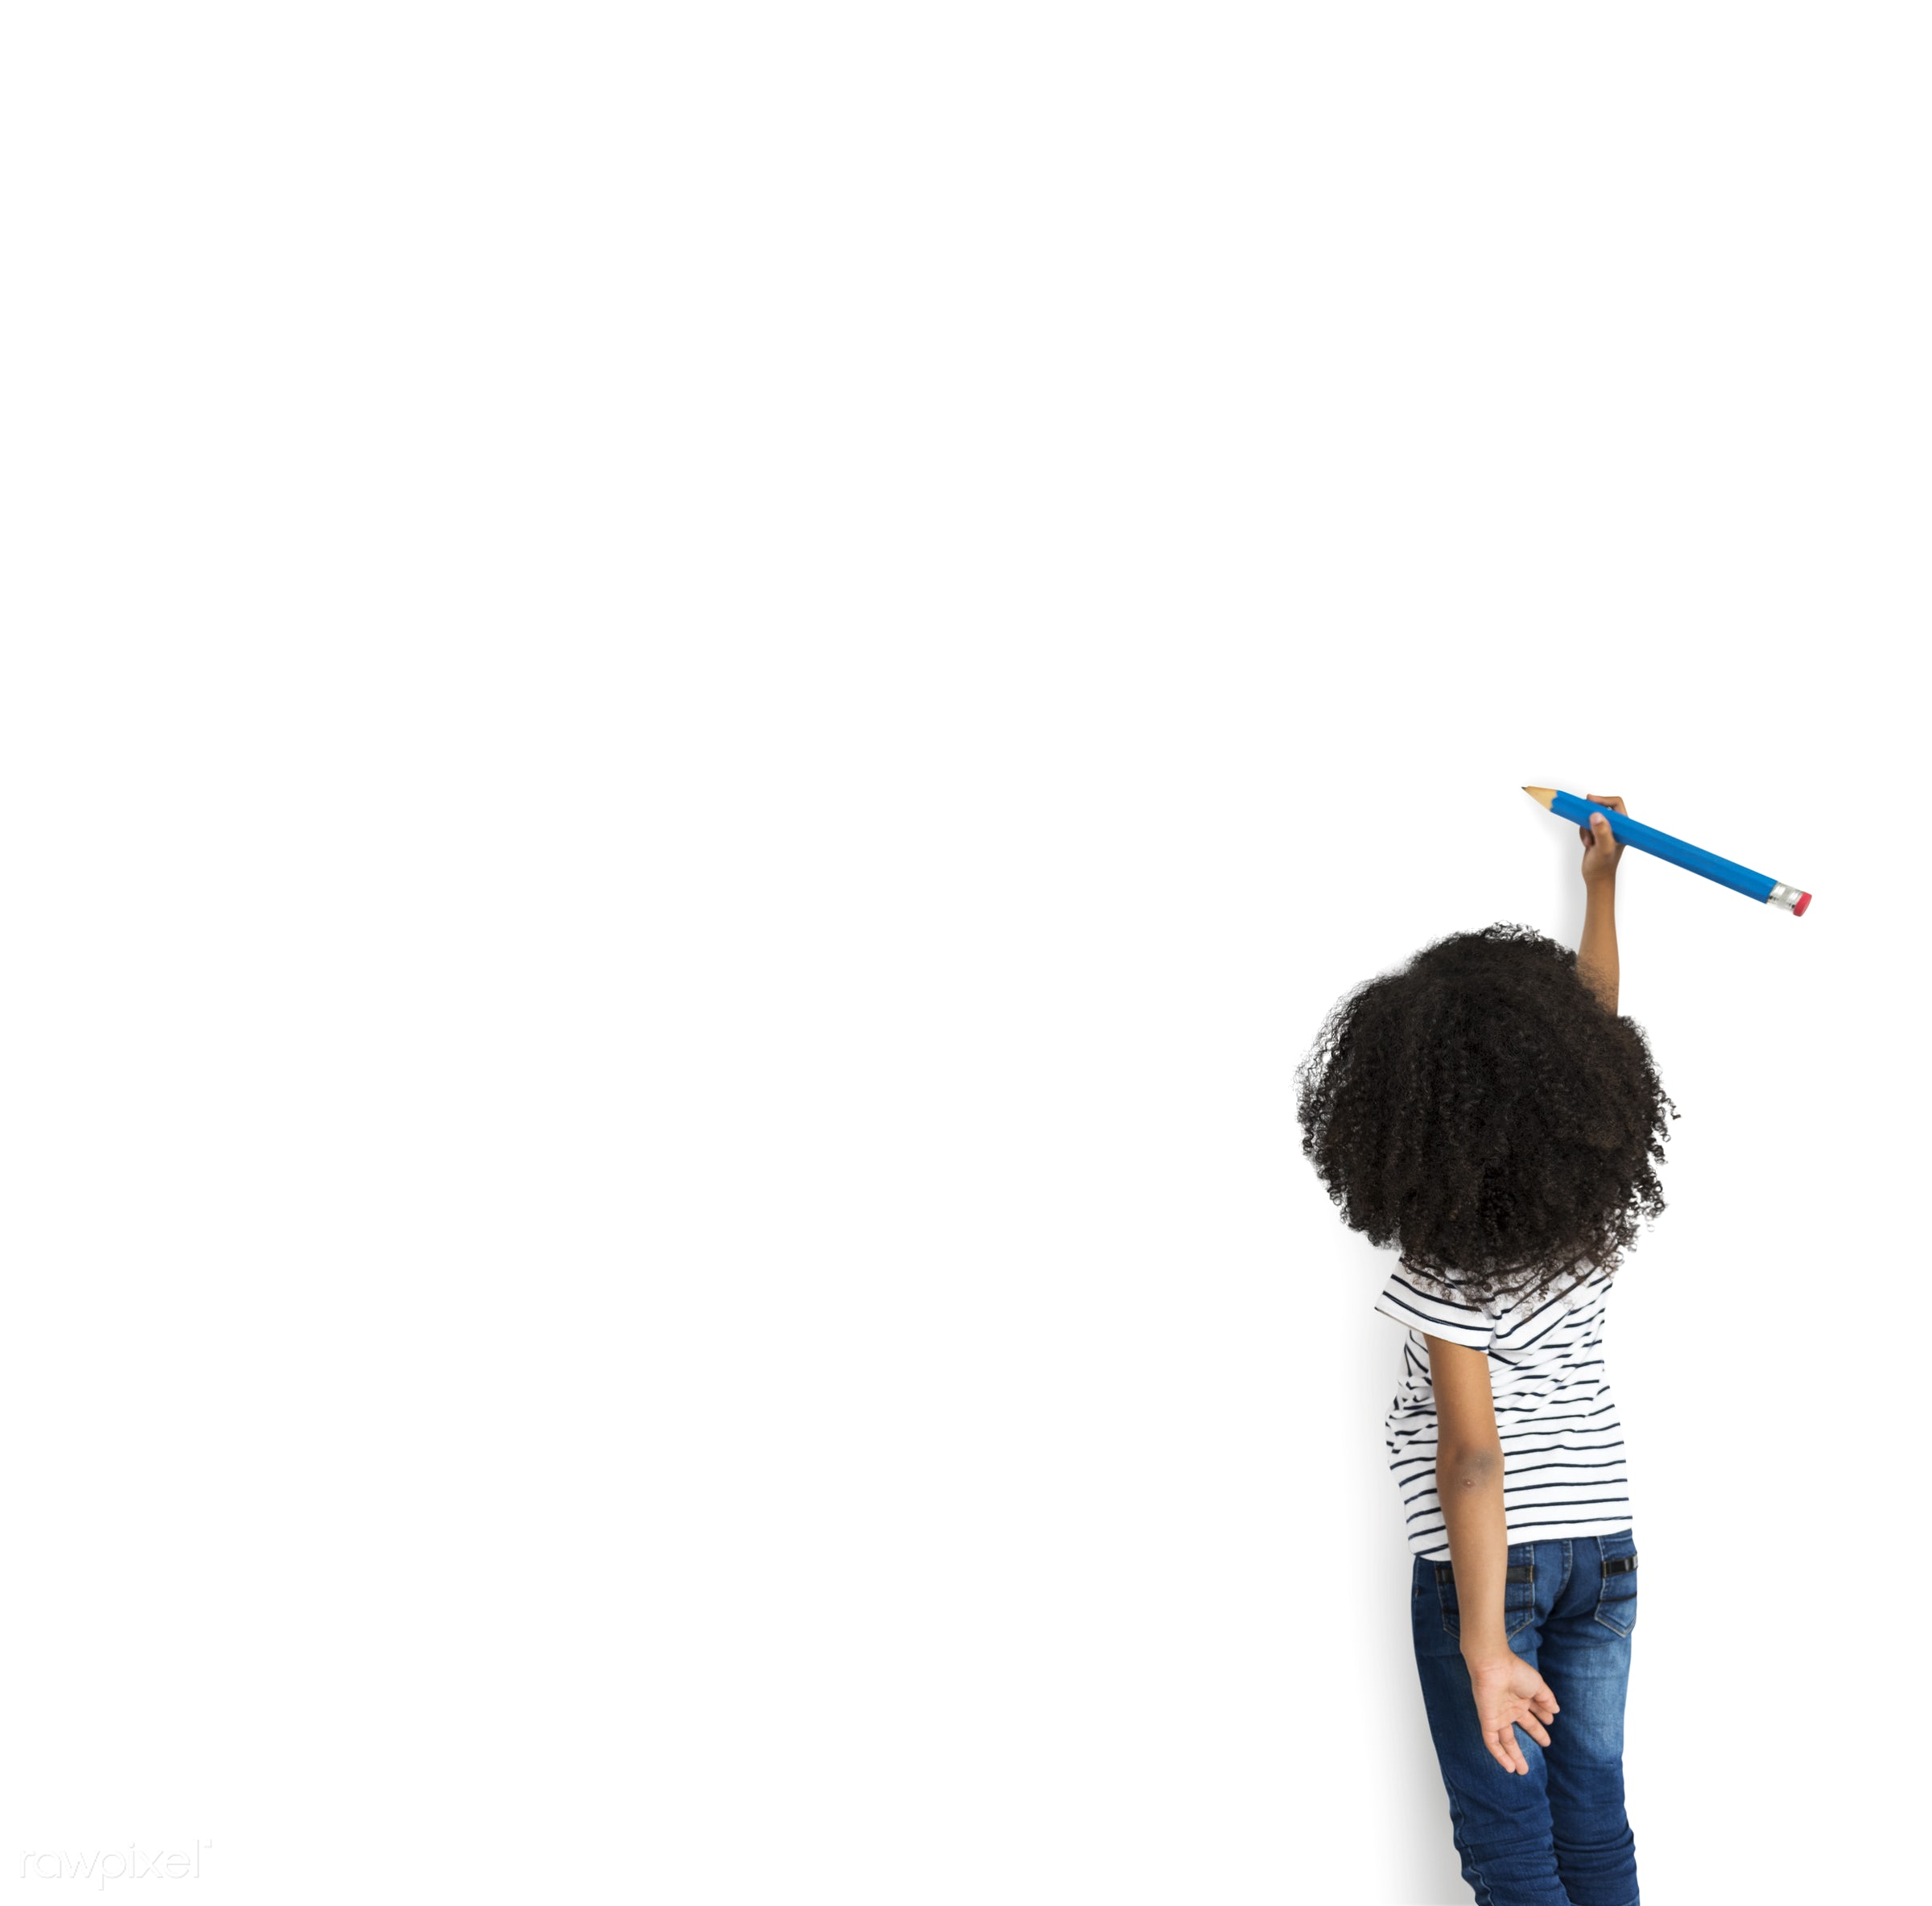 studio, expression, person, isolated on white, little, people, creativity, drawing, kid, child, draw, girl, solo, sketching...